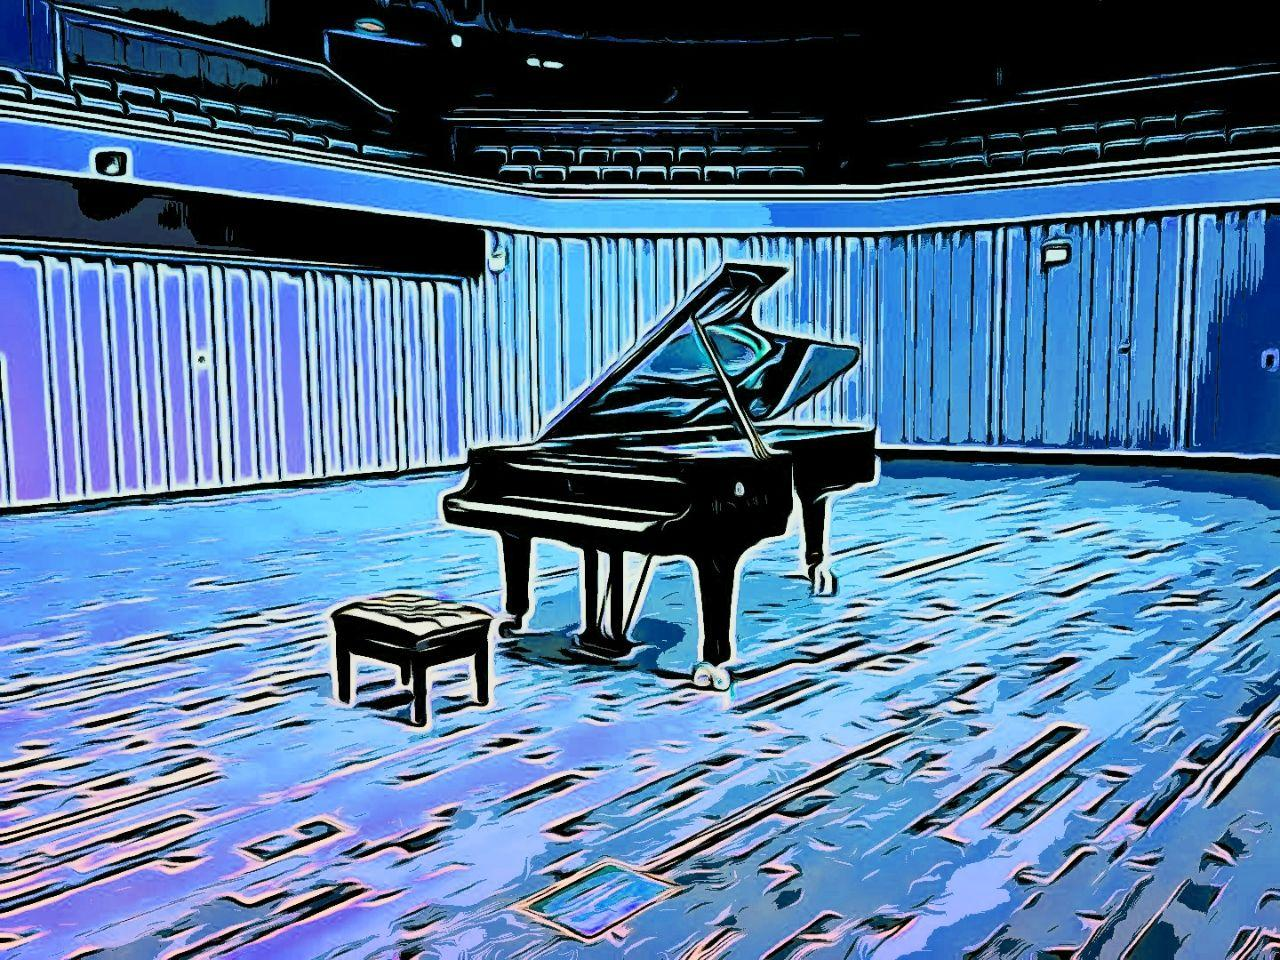 Piano in a room